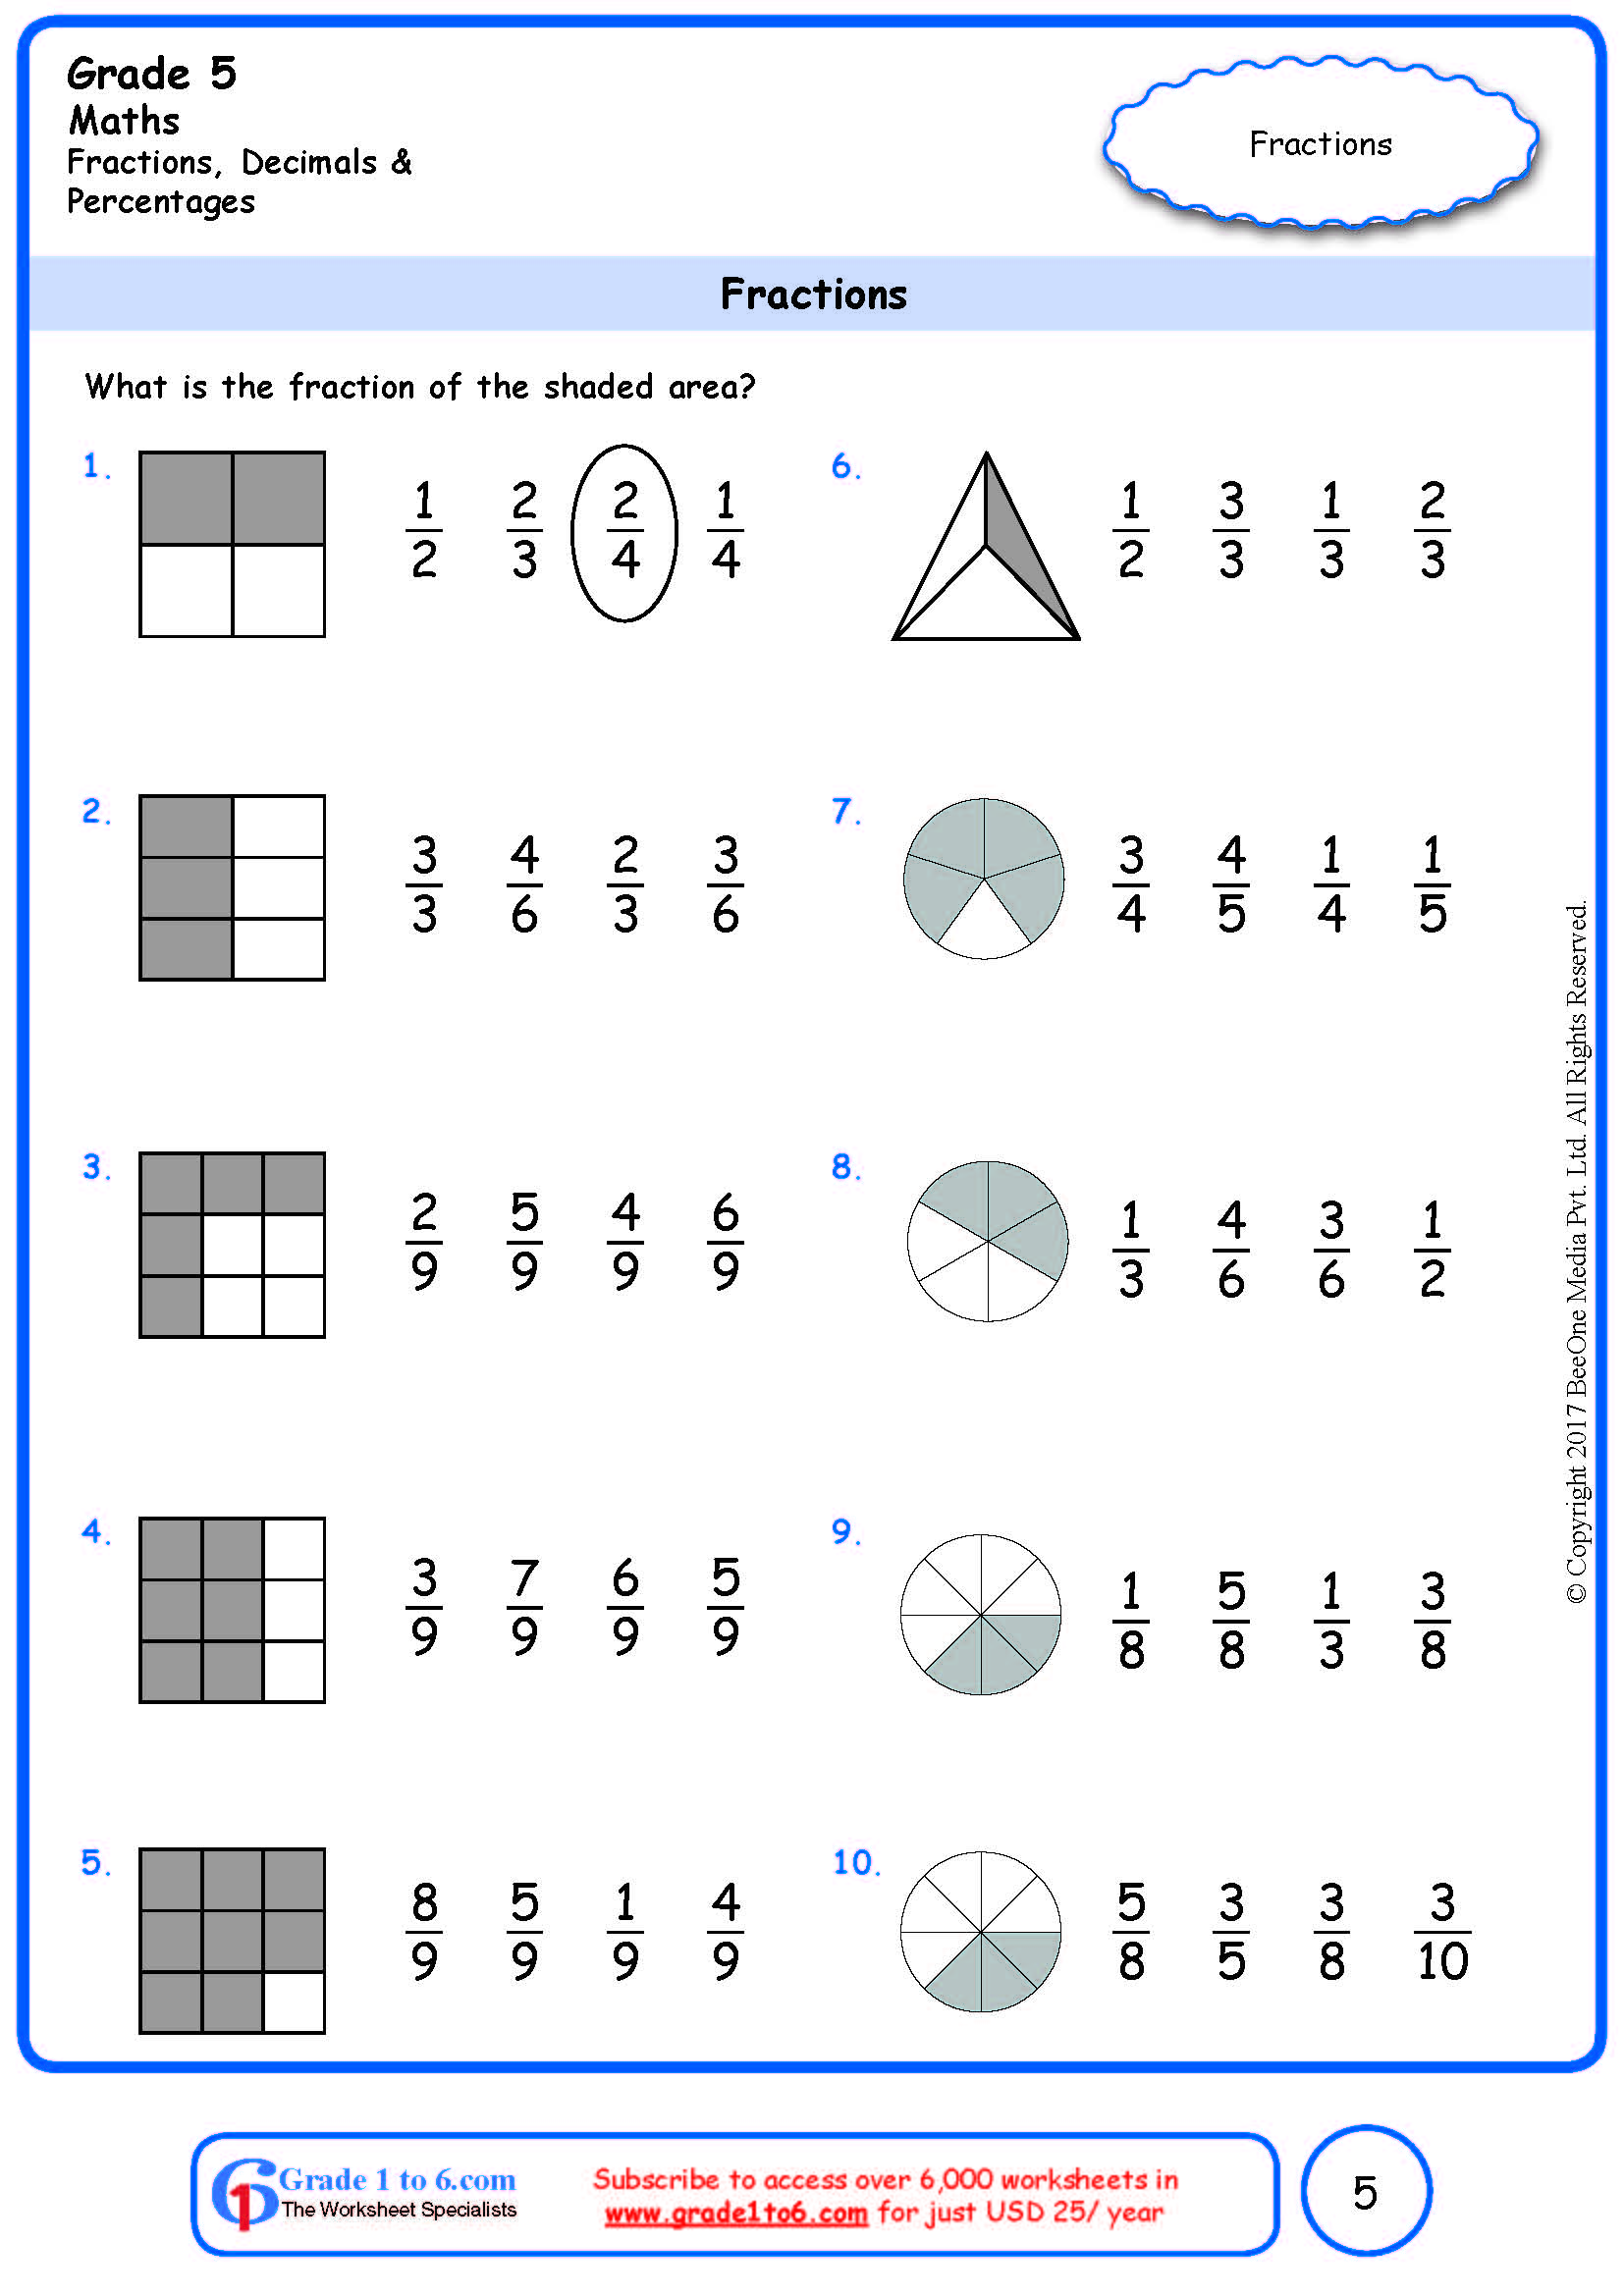 Grade 5 Fraction Of Shaded Area Worksheets Ade1to6